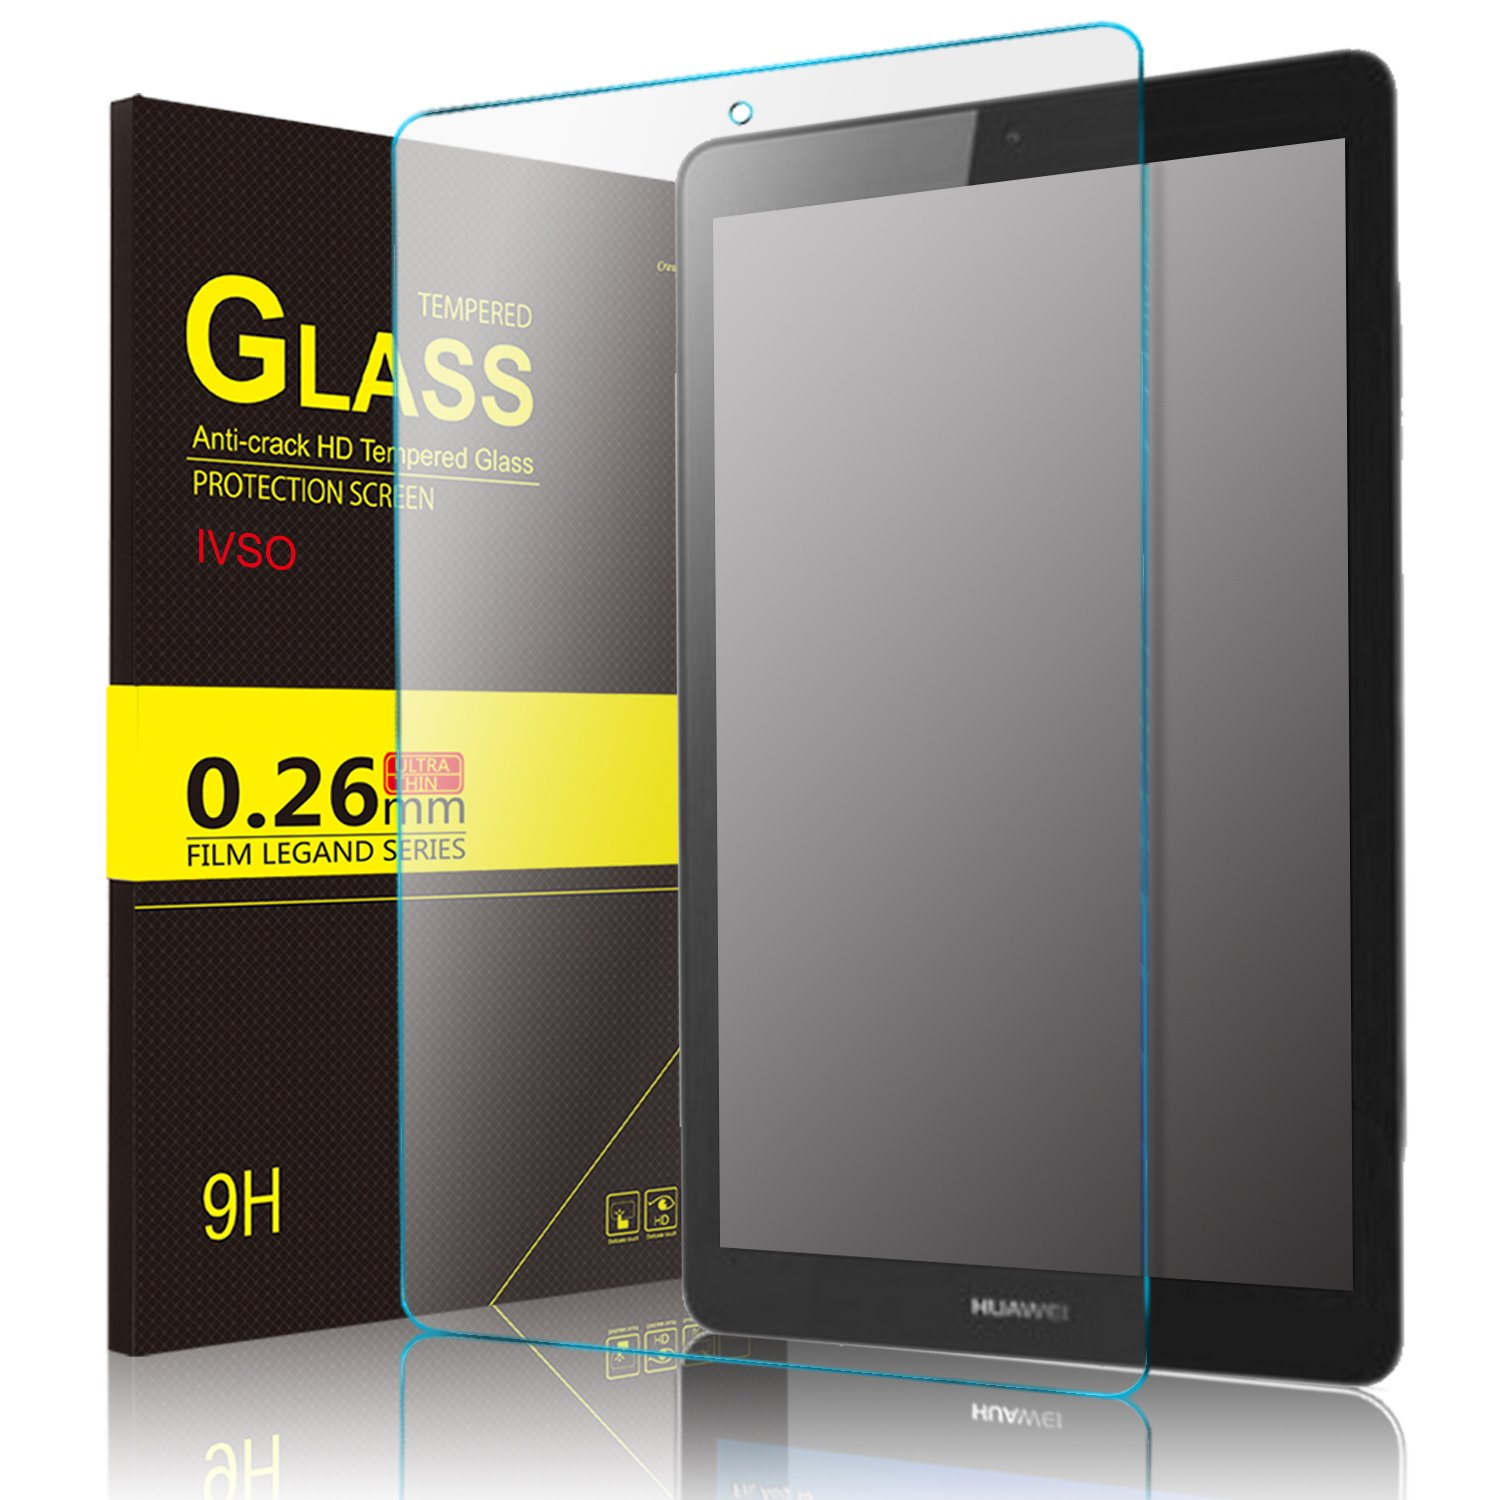 IVSO Samsung Galaxy TAB A 8.0 2018 T387 Screen Protector, [Scratch-Resistant] [No-Bubble ] 9H Hardness HD Clear Tempered Glass Screen Protector for Samsung Galaxy TAB A 8.0 2018 T387 Tablet (2 Pack)